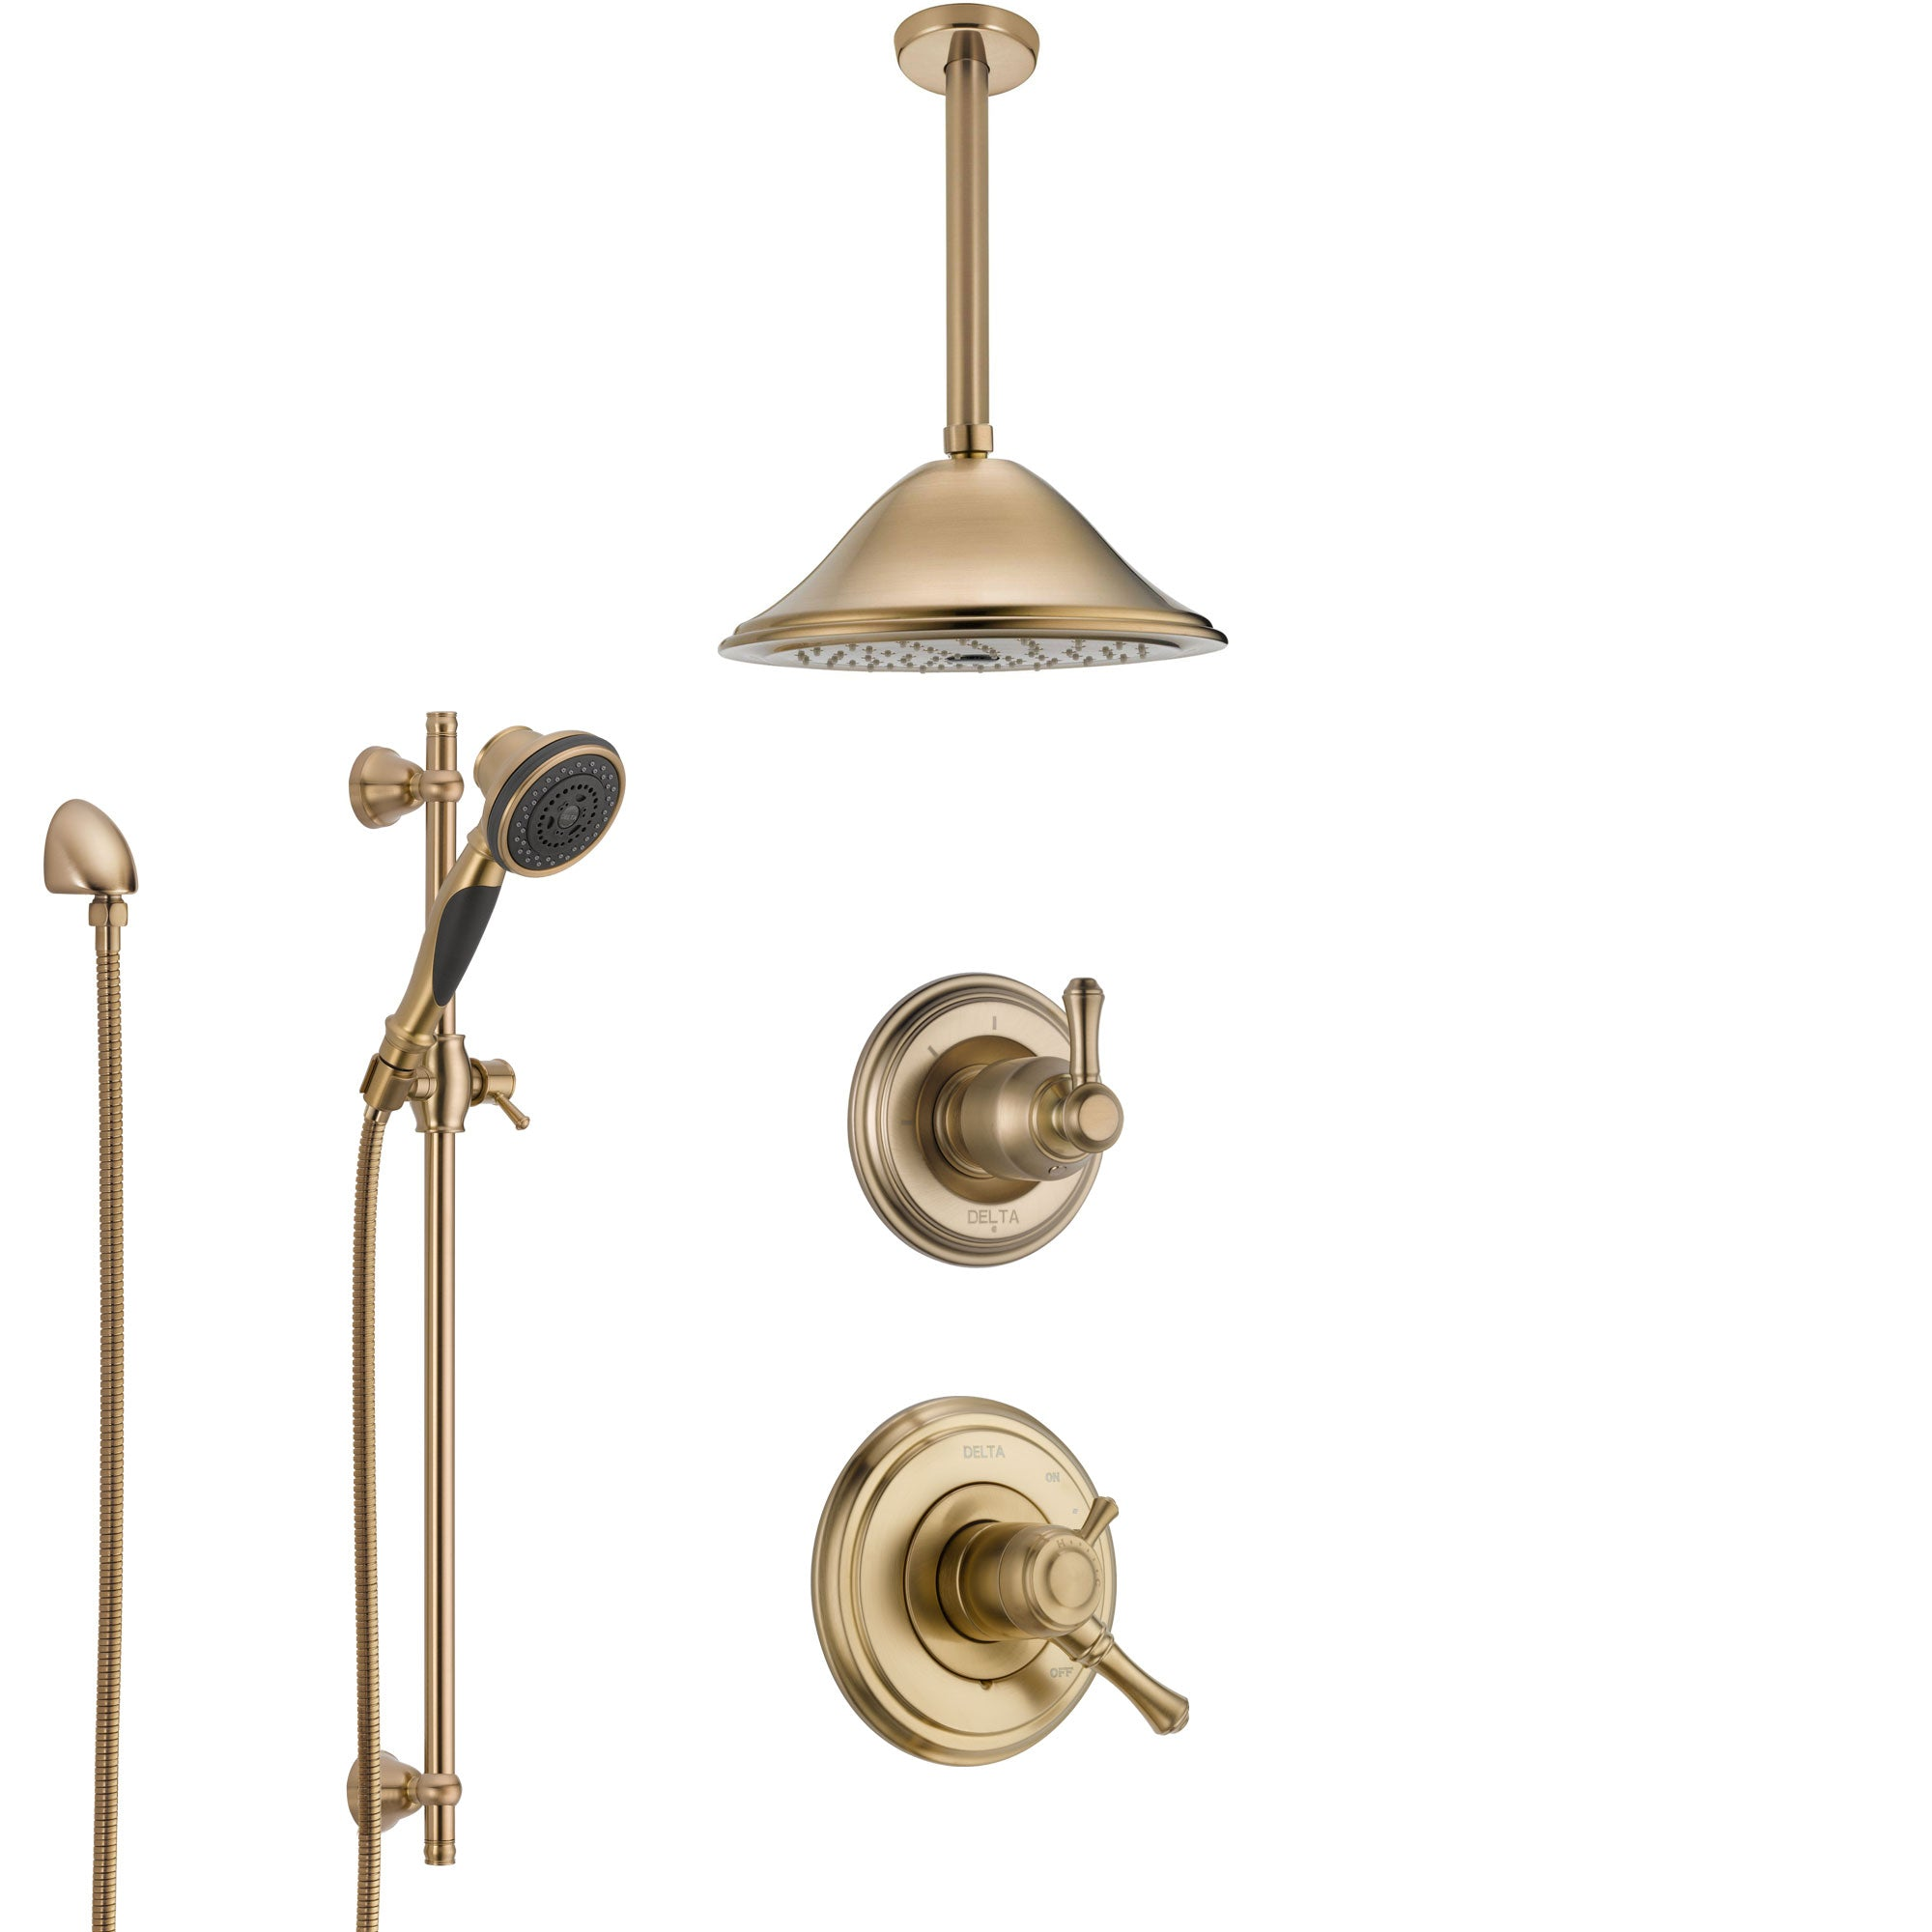 Delta Cassidy Champagne Bronze Shower System with Dual Control Handle, Diverter, Ceiling Mount Showerhead, and Hand Shower with Slidebar SS1797CZ1